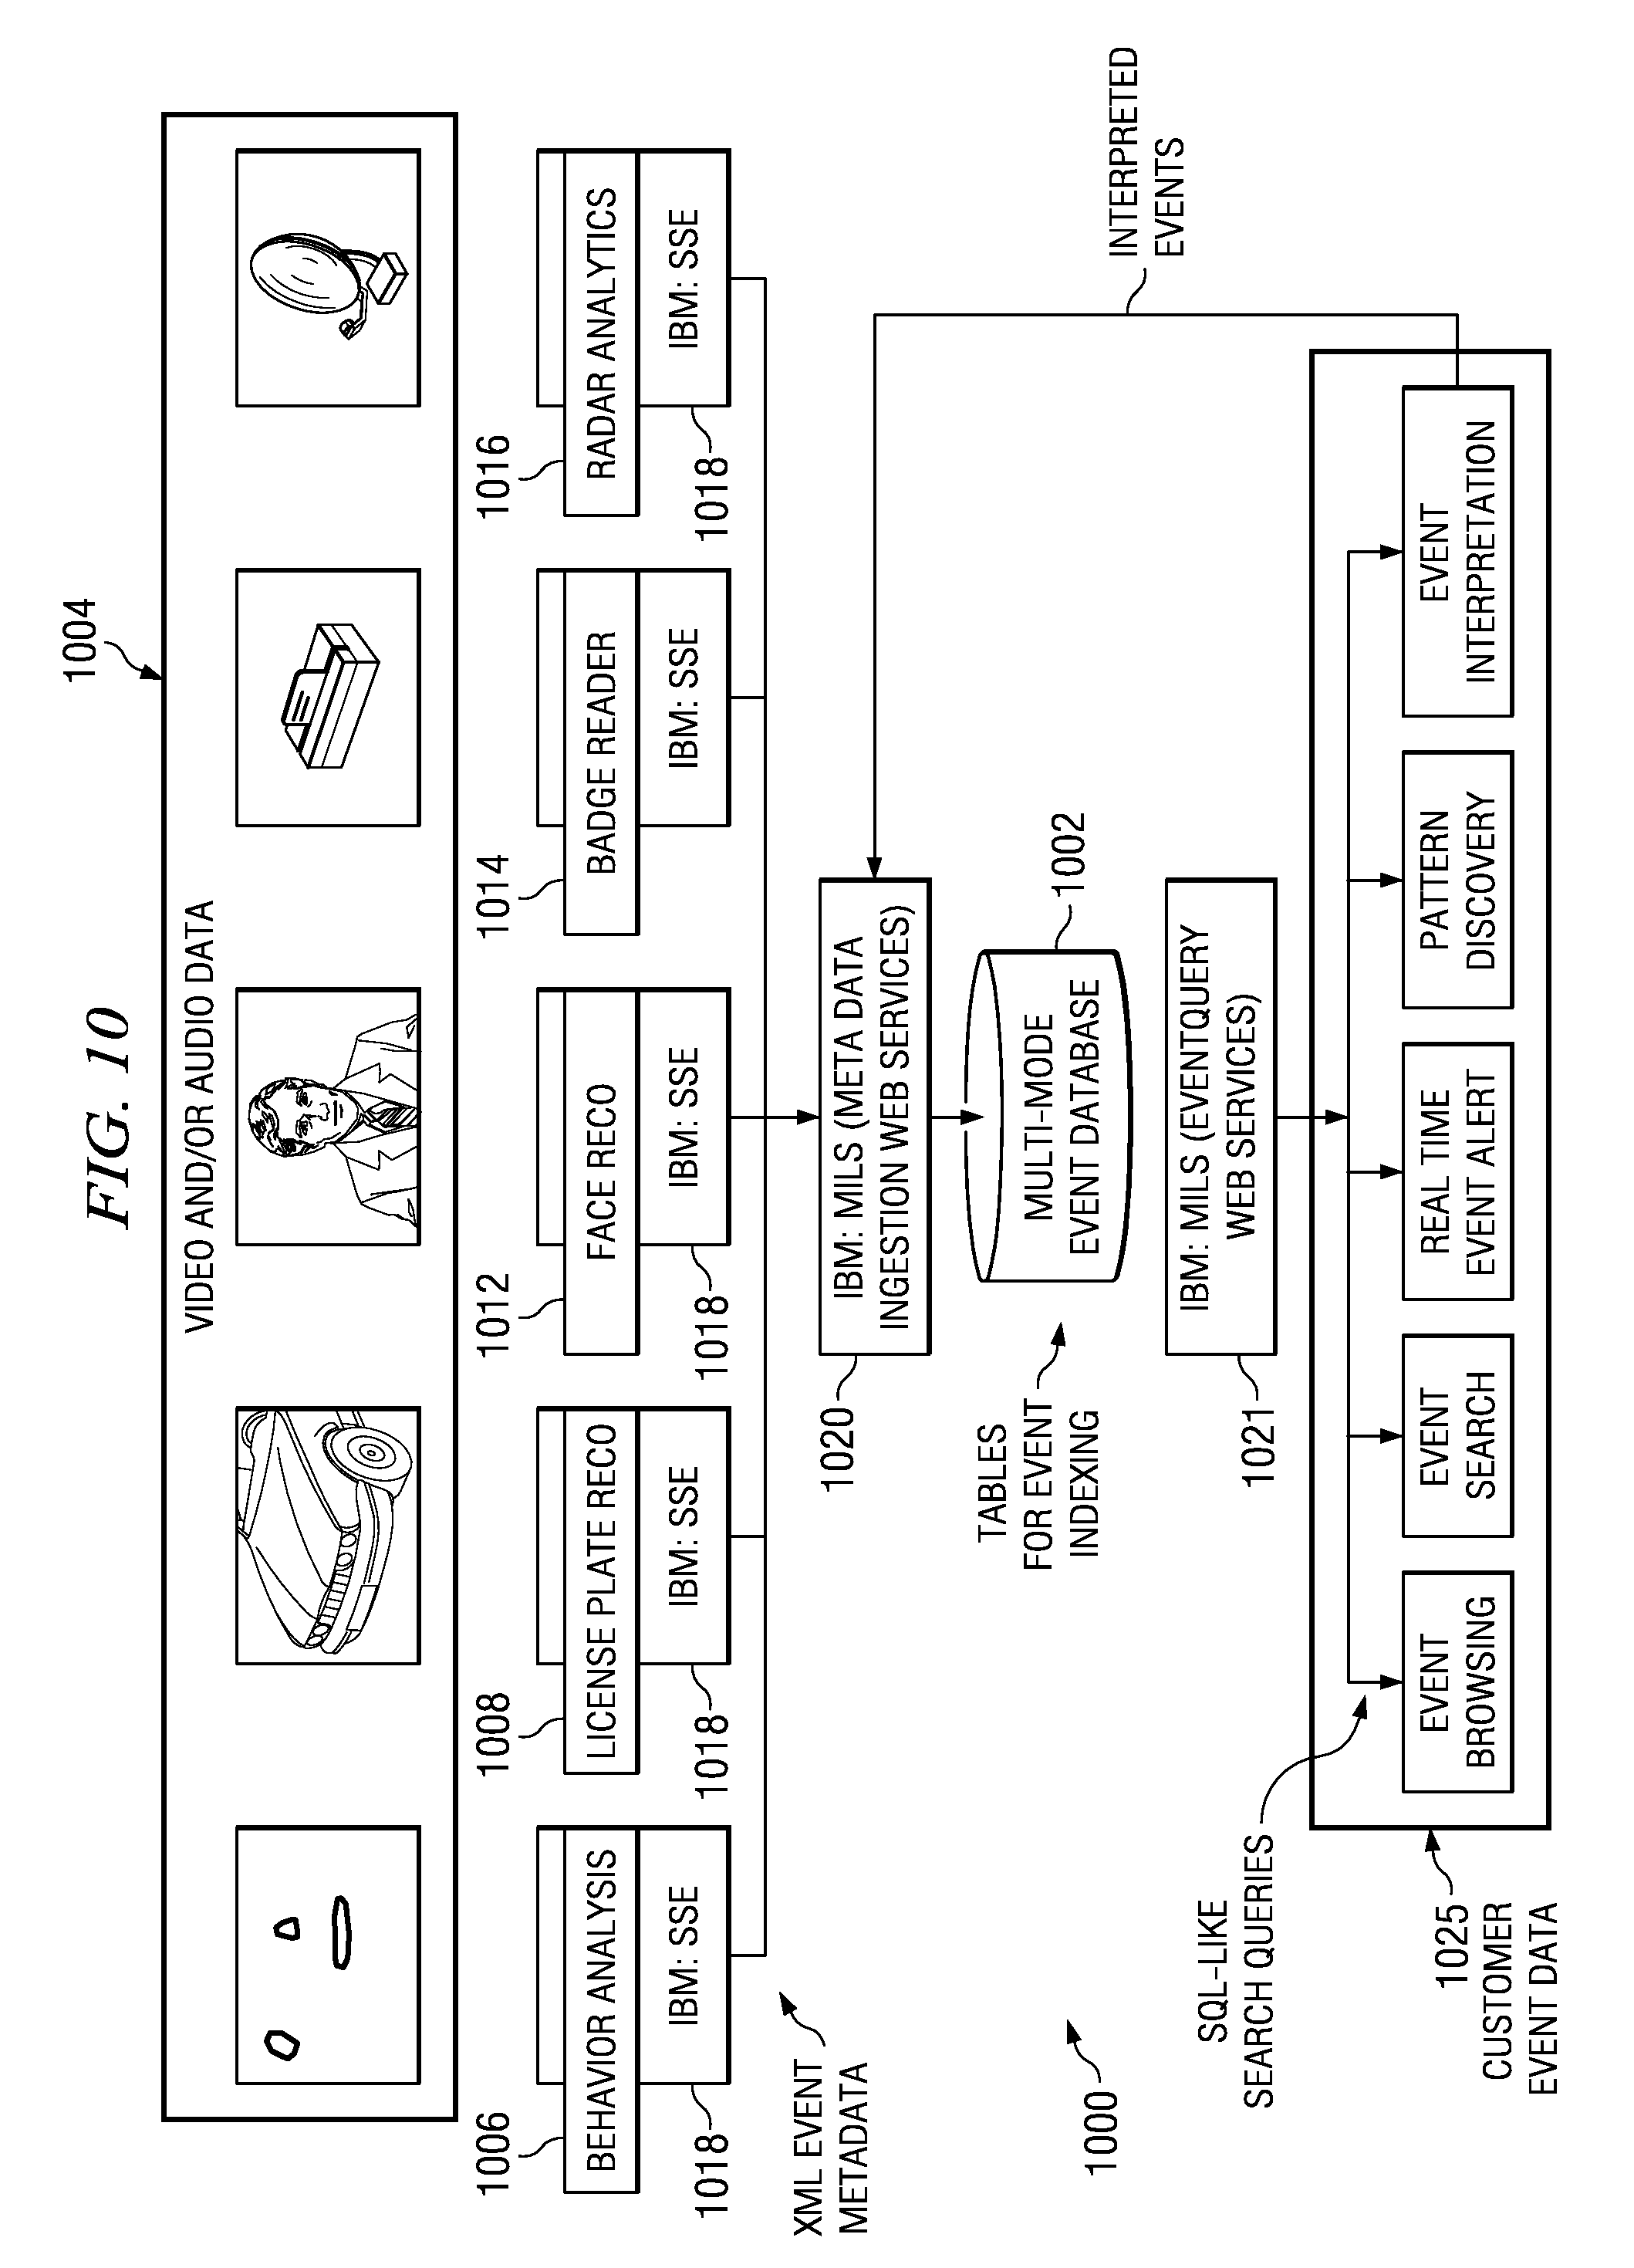 Patent US 20080249859A1 on